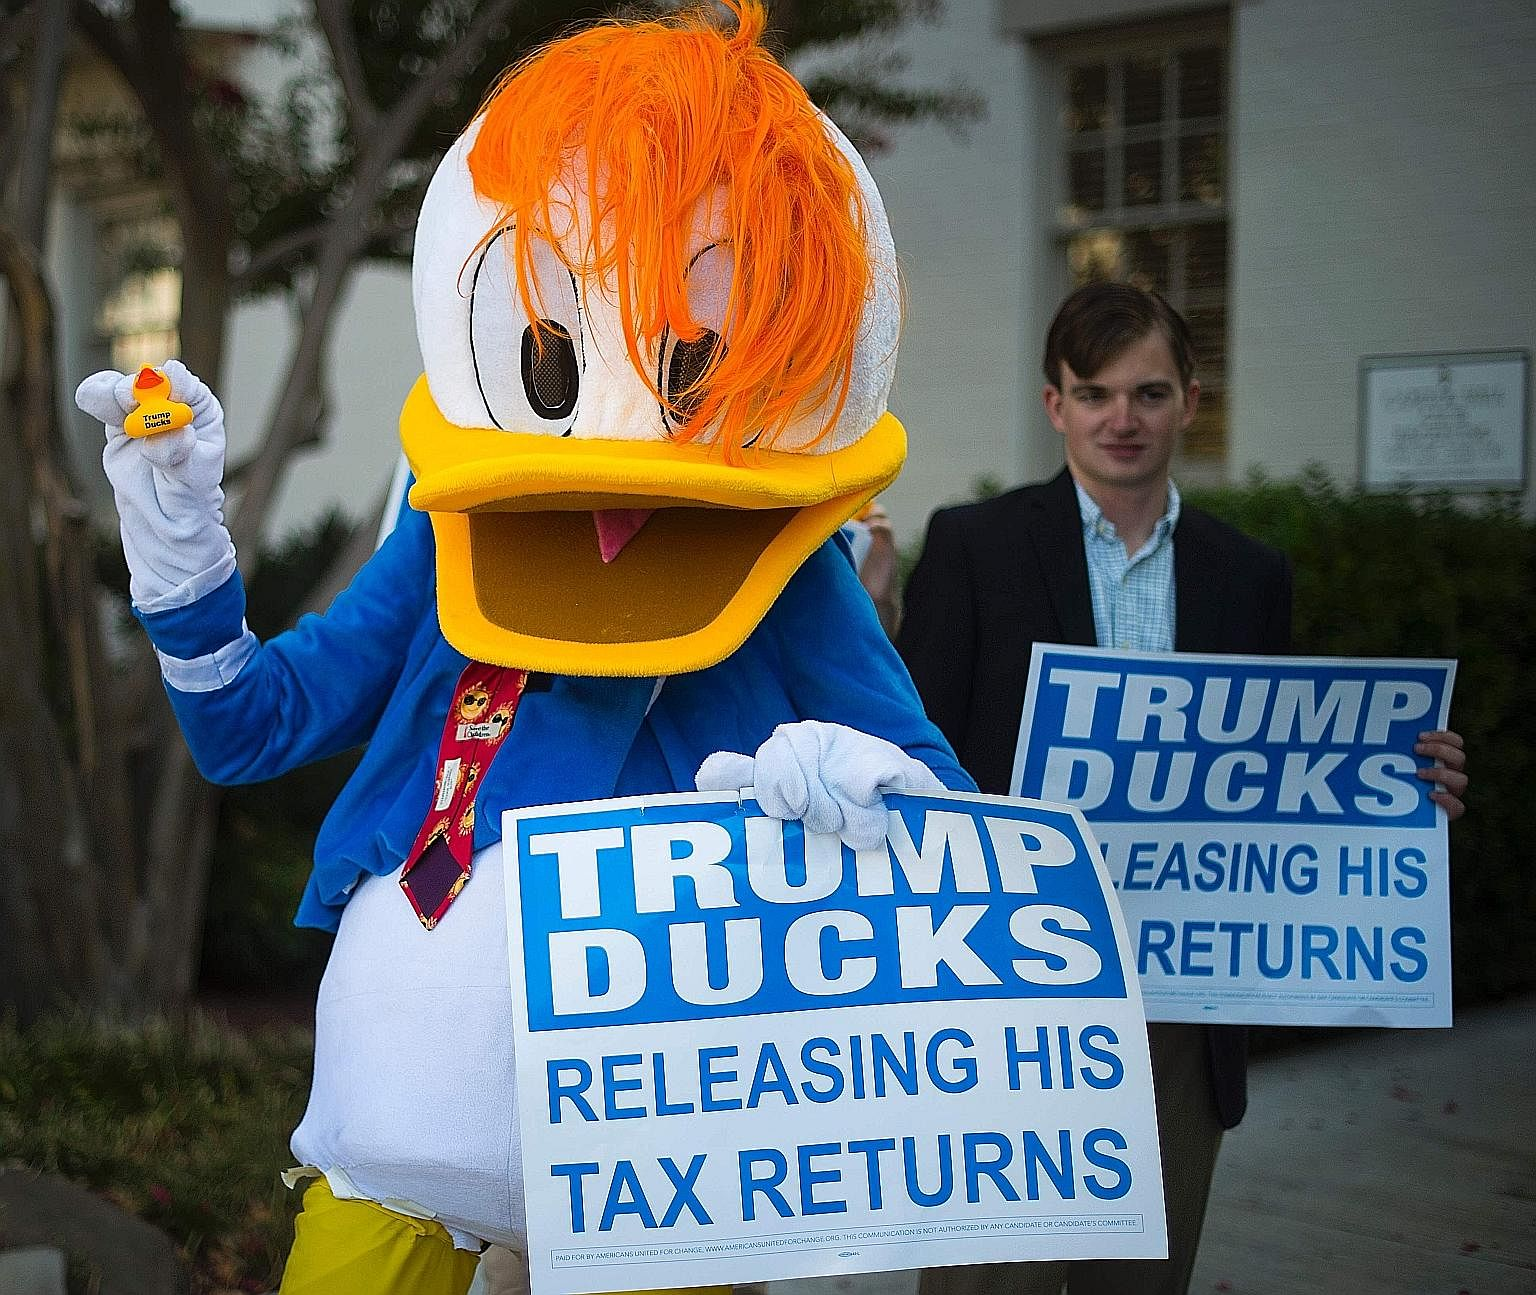 """A protester dressed as Donald Duck protesting against Republican presidential nominee Donald Trump, who told his opponent Hillary Clinton in the first presidential debate that paying no federal income taxes made him """"smart"""". When the wealthy avoid pa"""